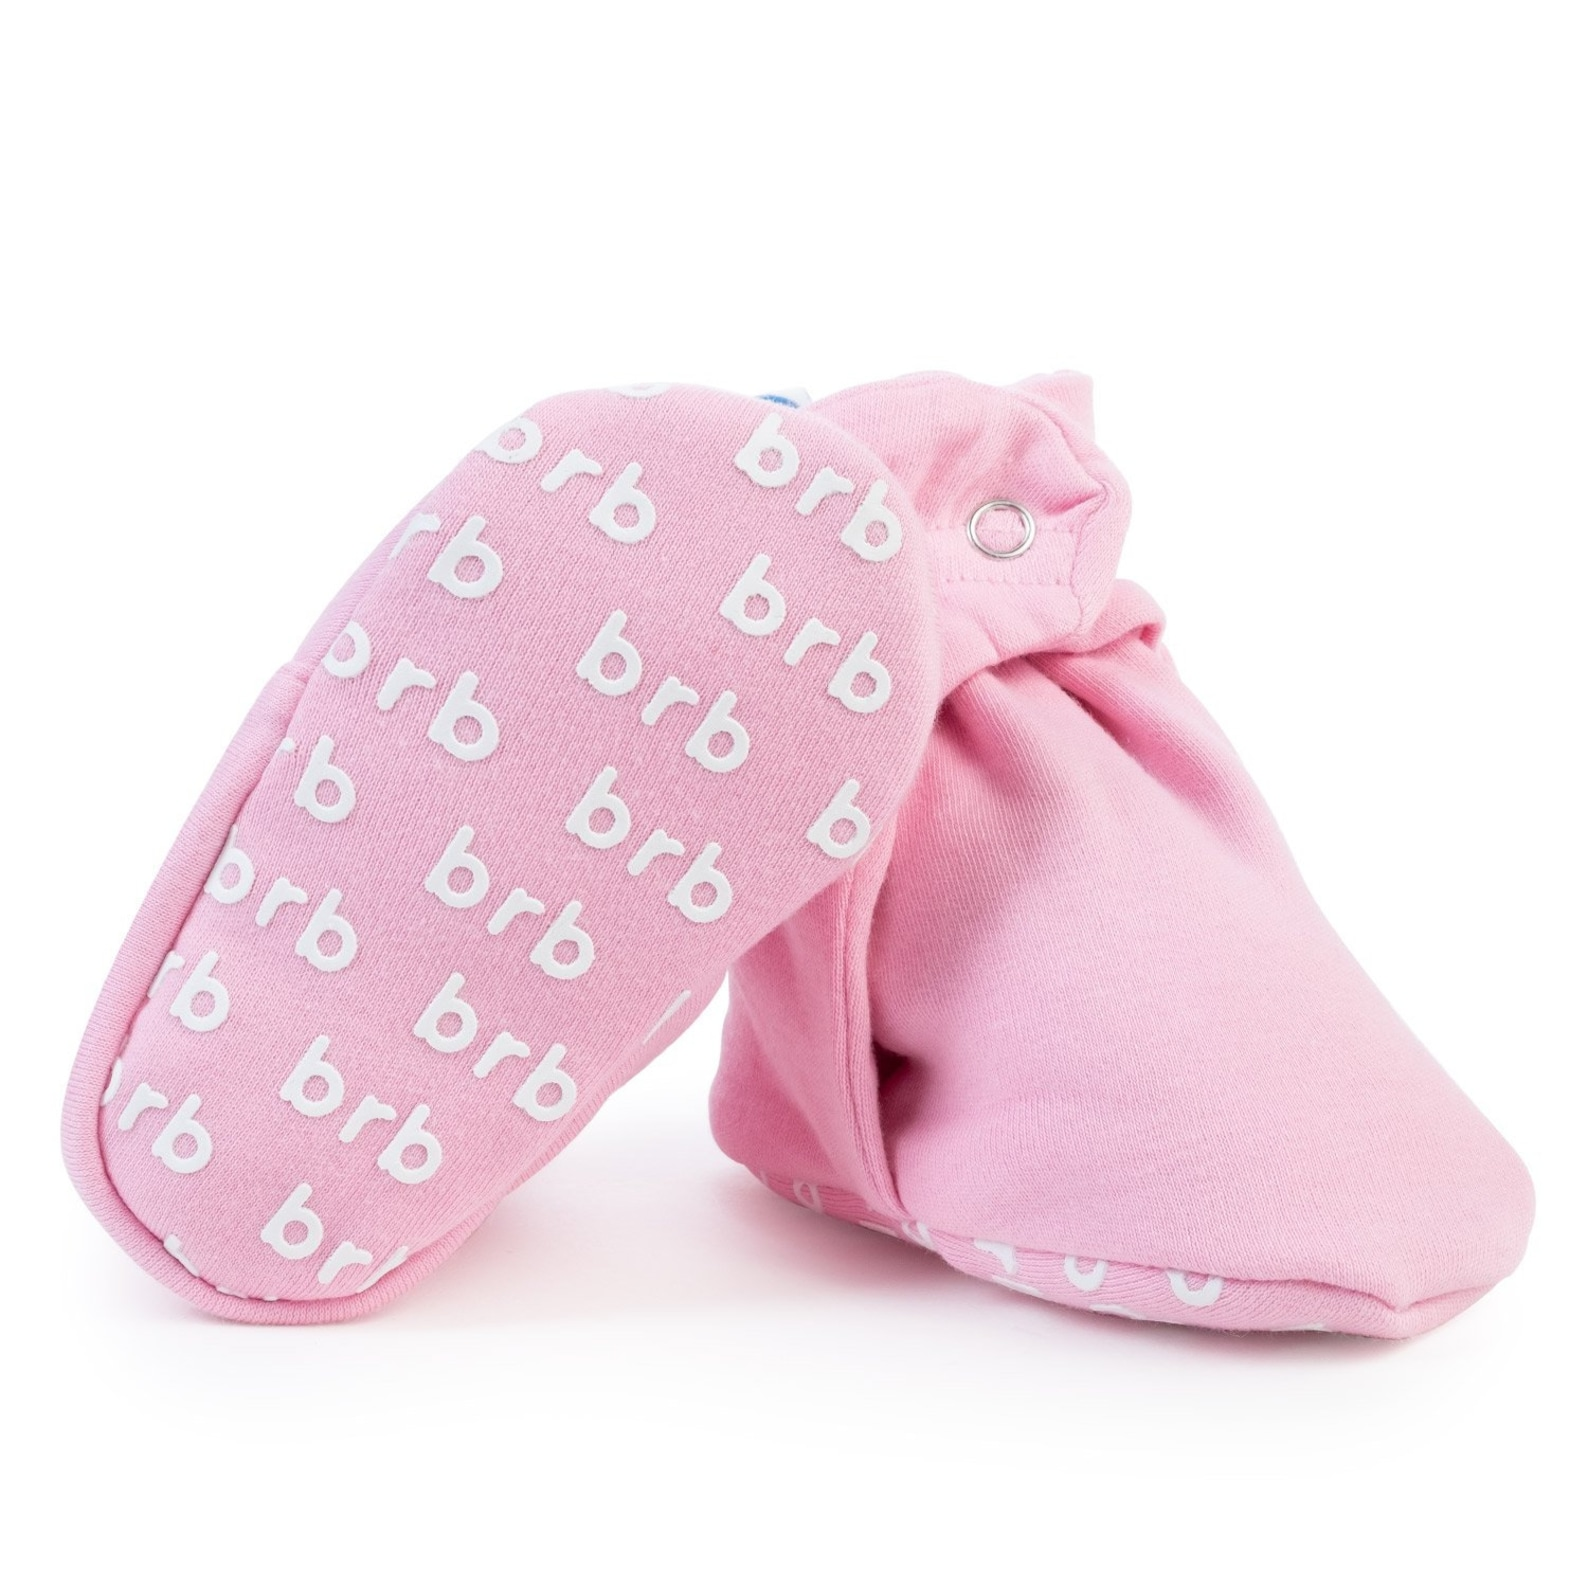 birdrock baby organic cotton booties: ballet pink | lightweight booties for boys & girls